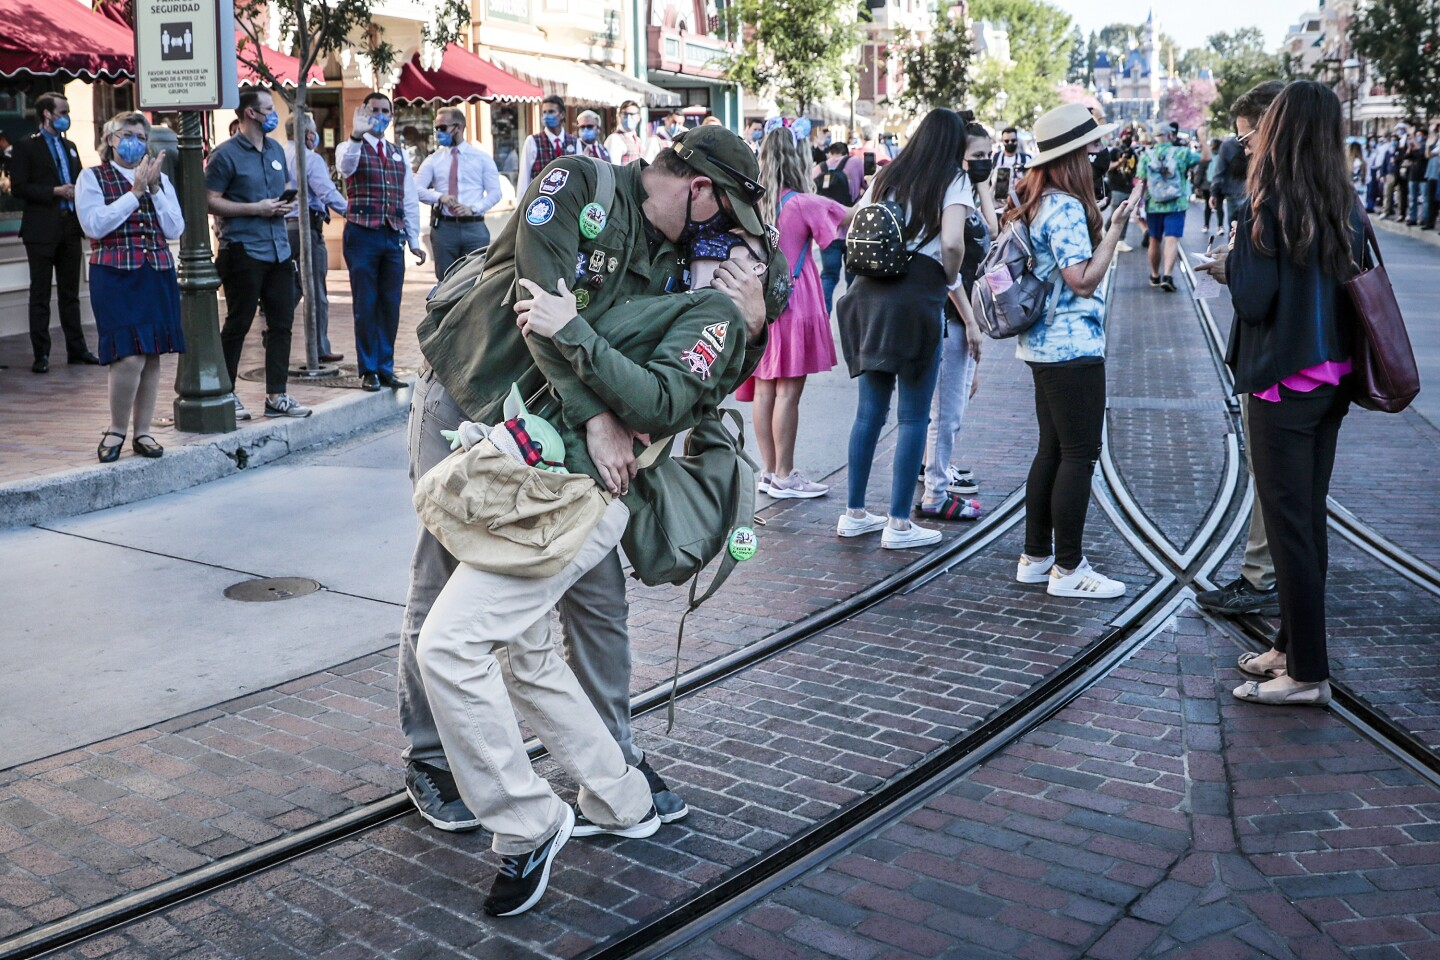 ANAHEIM CA APRIL 30, 2021 - A couple recreate the famous Alfred Eisenstaedt V-J Day photo inside Disneyland as the theme park reopens for the first time in more than a year on Friday, April 30, 2021. The reopening of Disneyland, which was shut down in March of last year due to the COVID-19 pandemic. ``is a monumental day for Anaheim,'' city spokesman Mike Lyster said.(Robert Gauthier / Los Angeles Times)